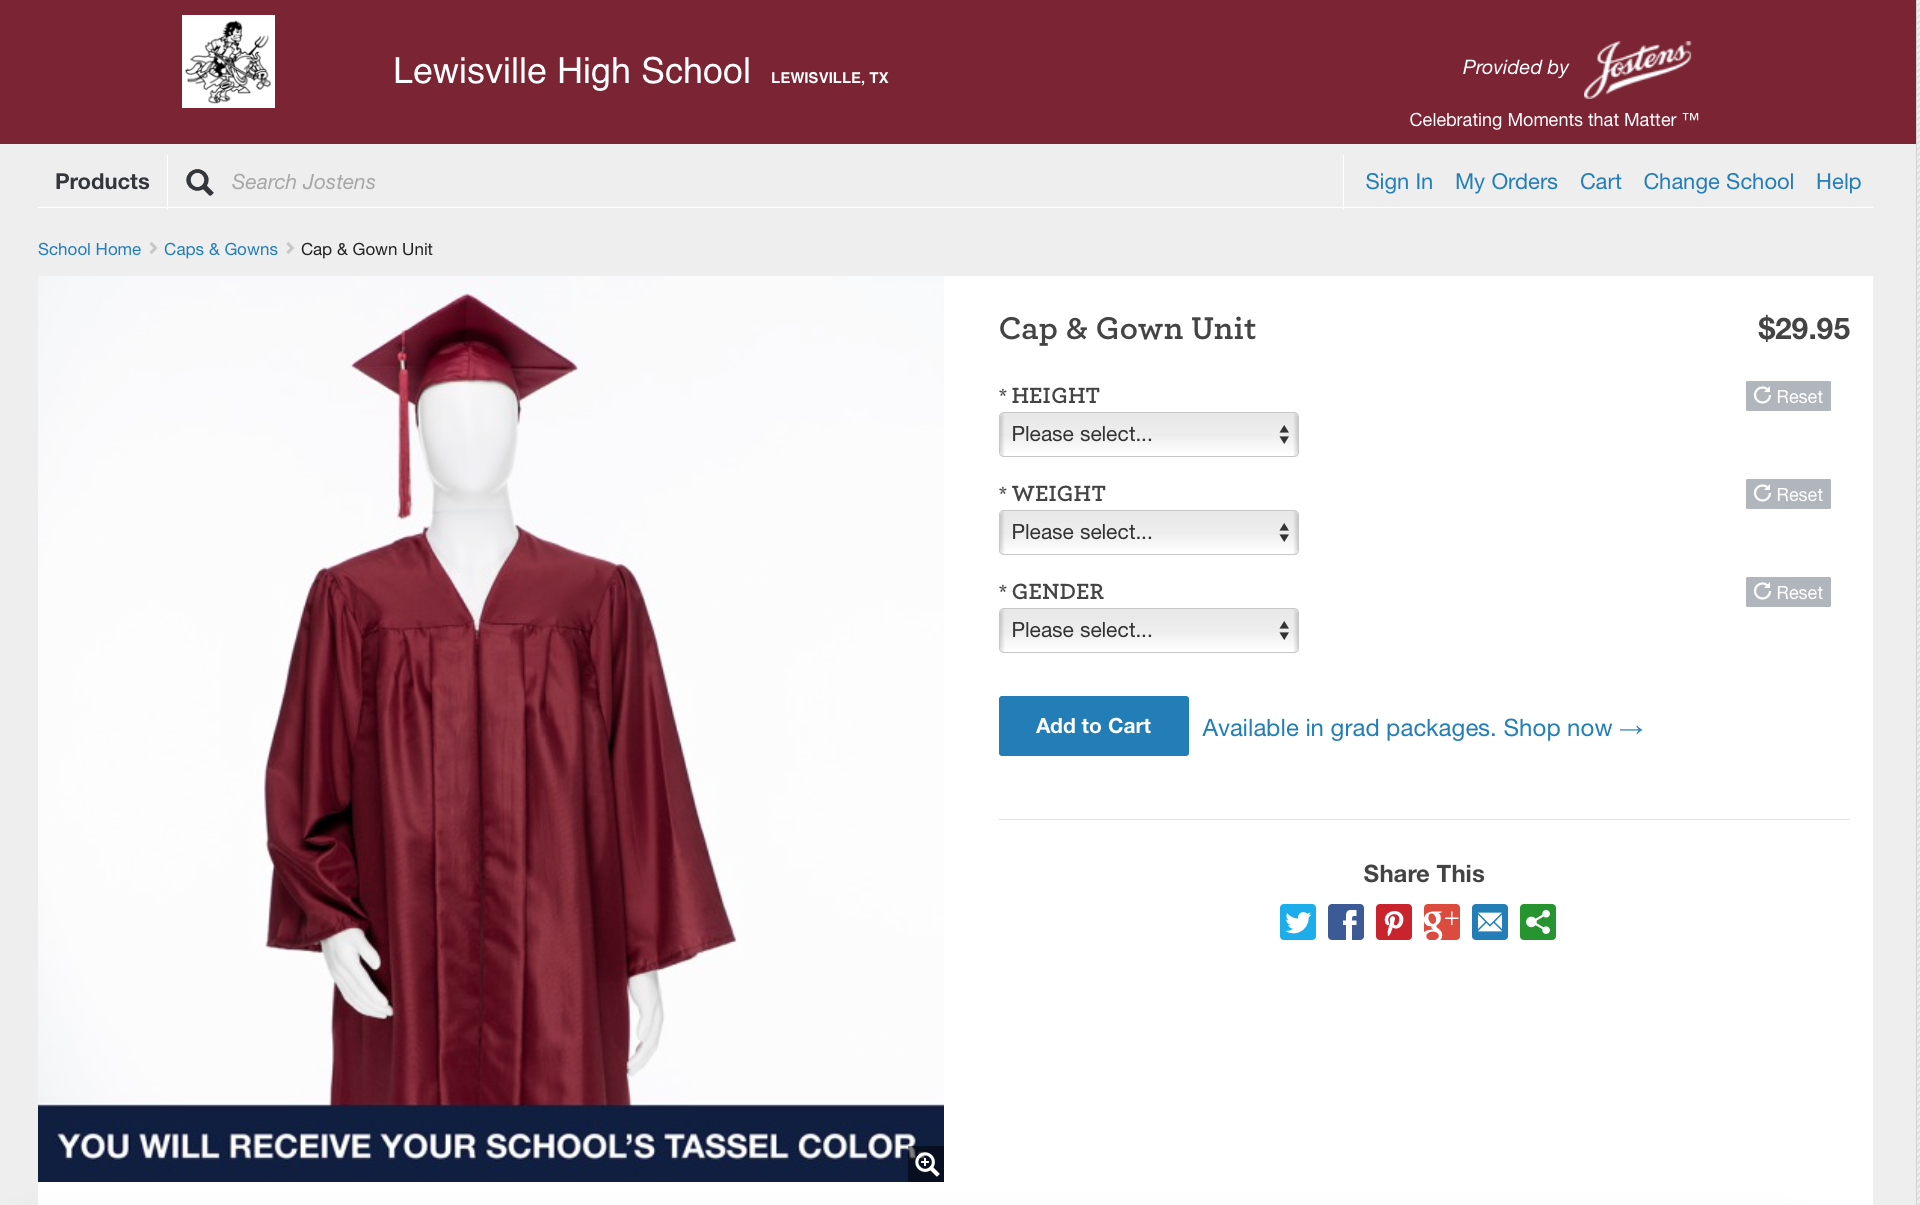 SENIORS - LAST CHANCE TO BUY CAPS AND GOWNS!